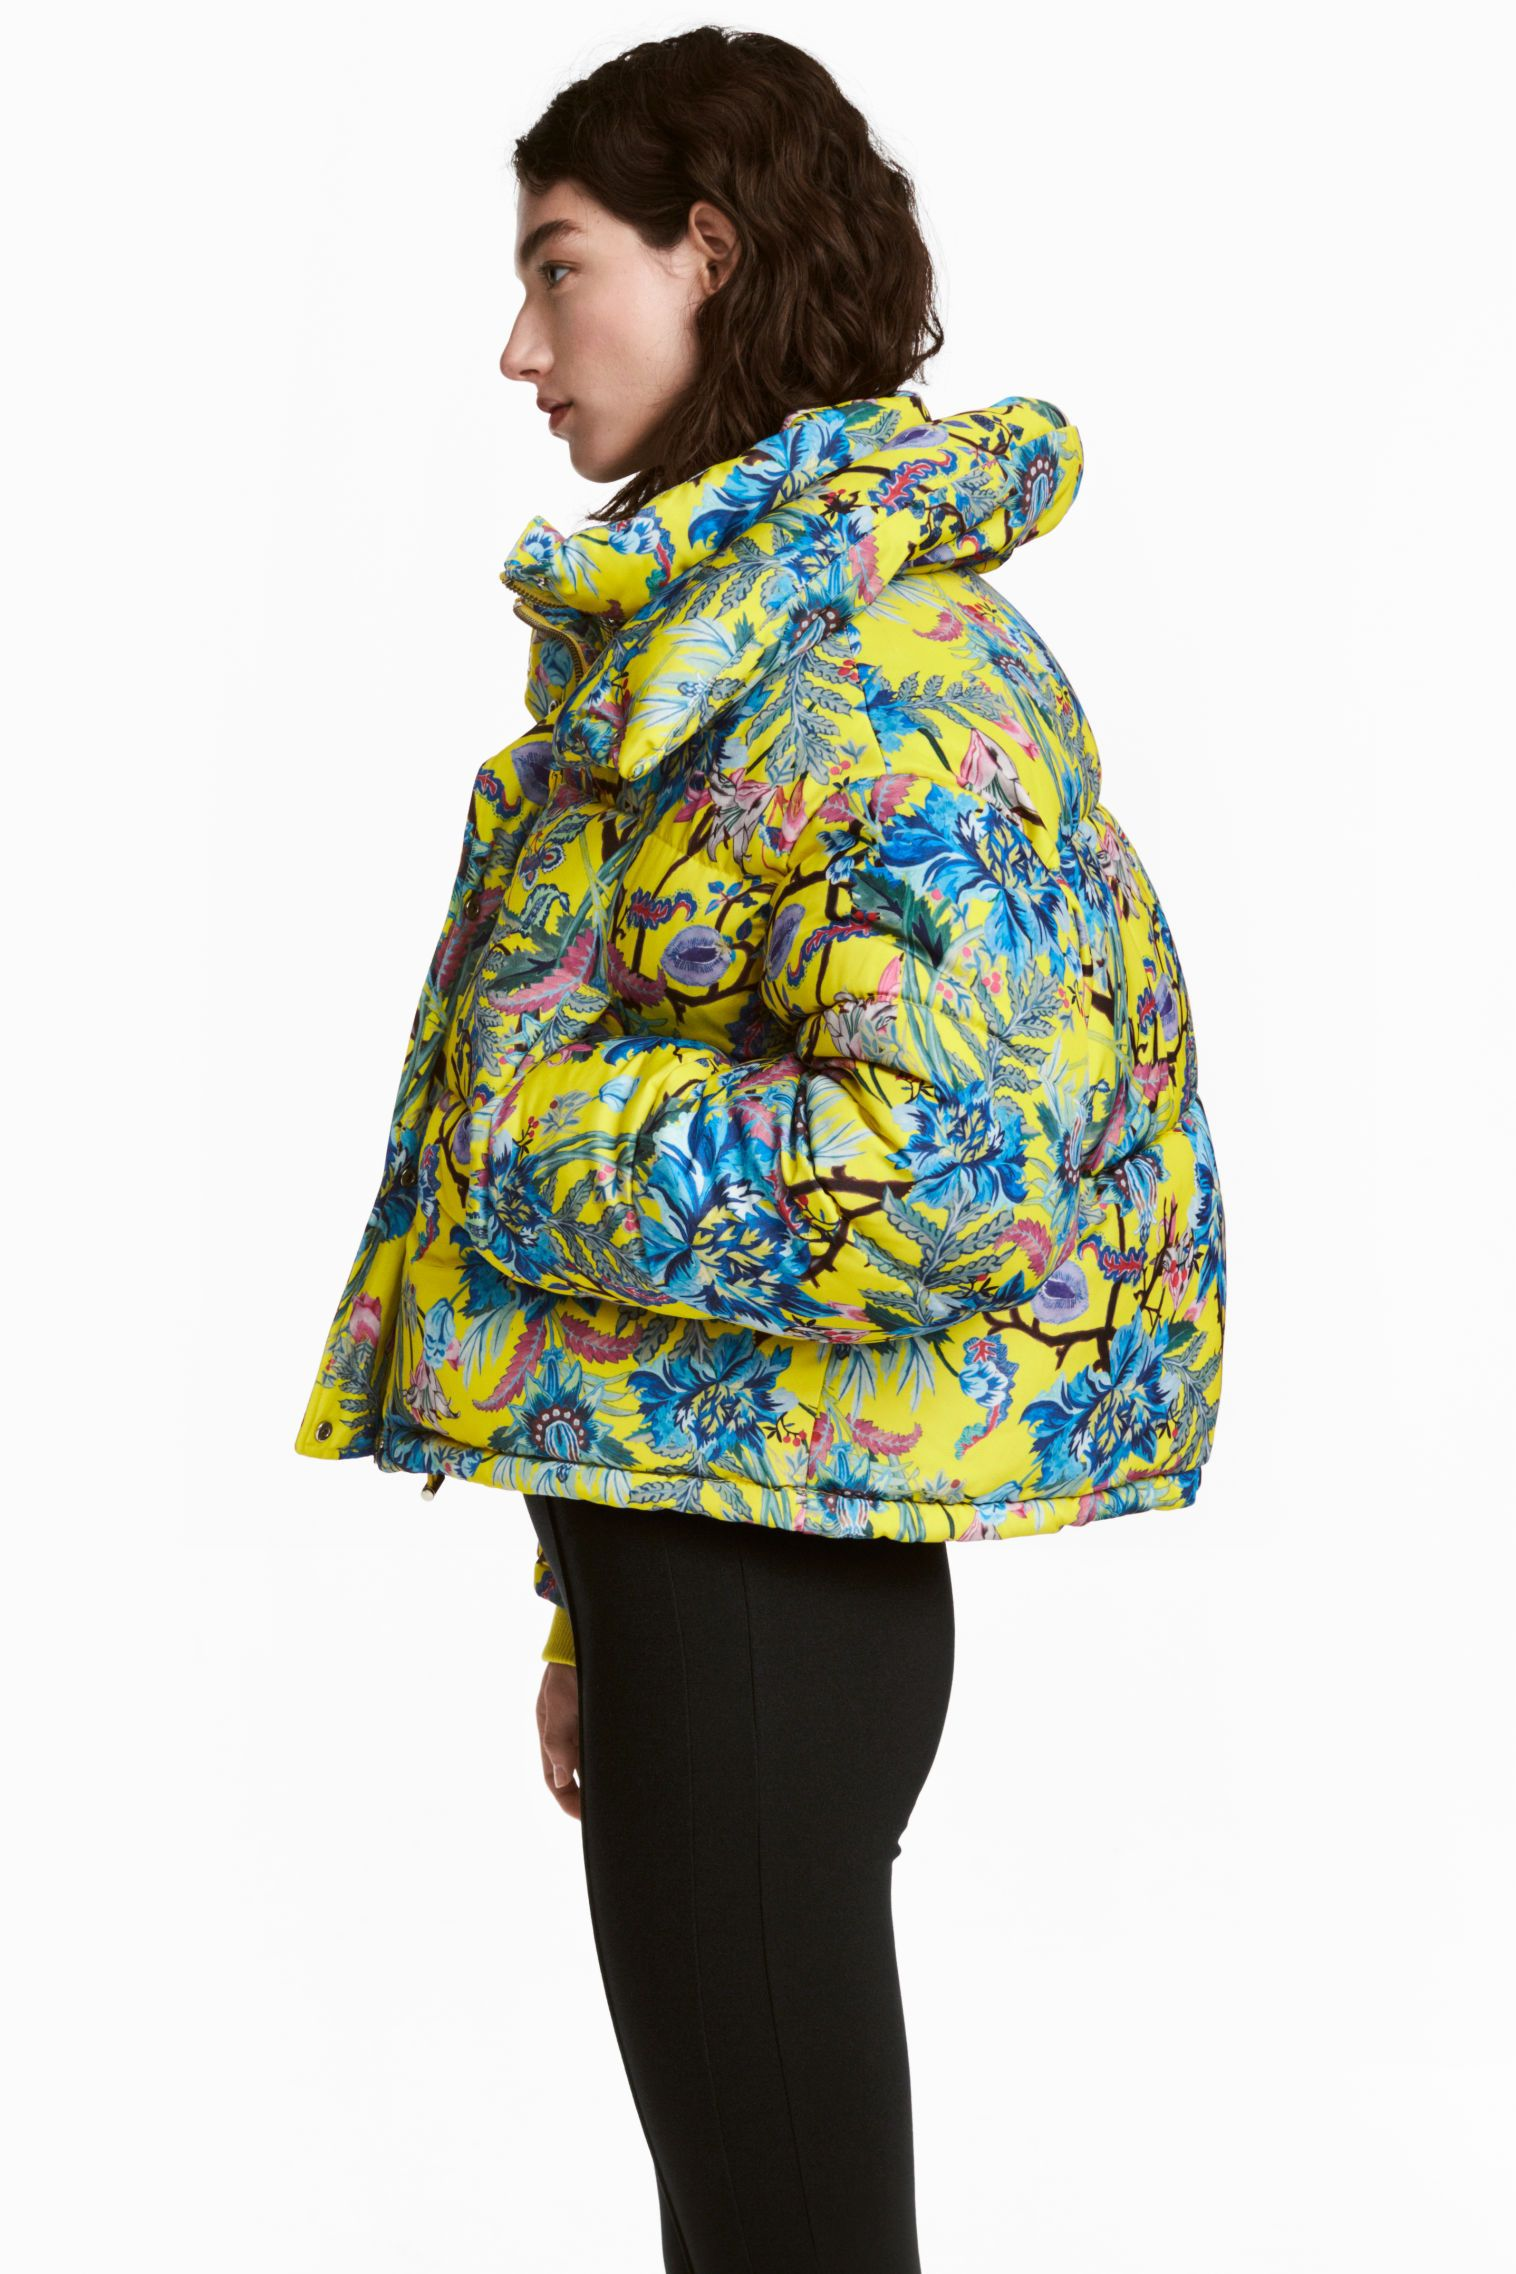 Short, padded, patterned jacket with a large, detachable extra collar, stand-up collar and zip and wind flap with press-studs down the front. Side pockets,